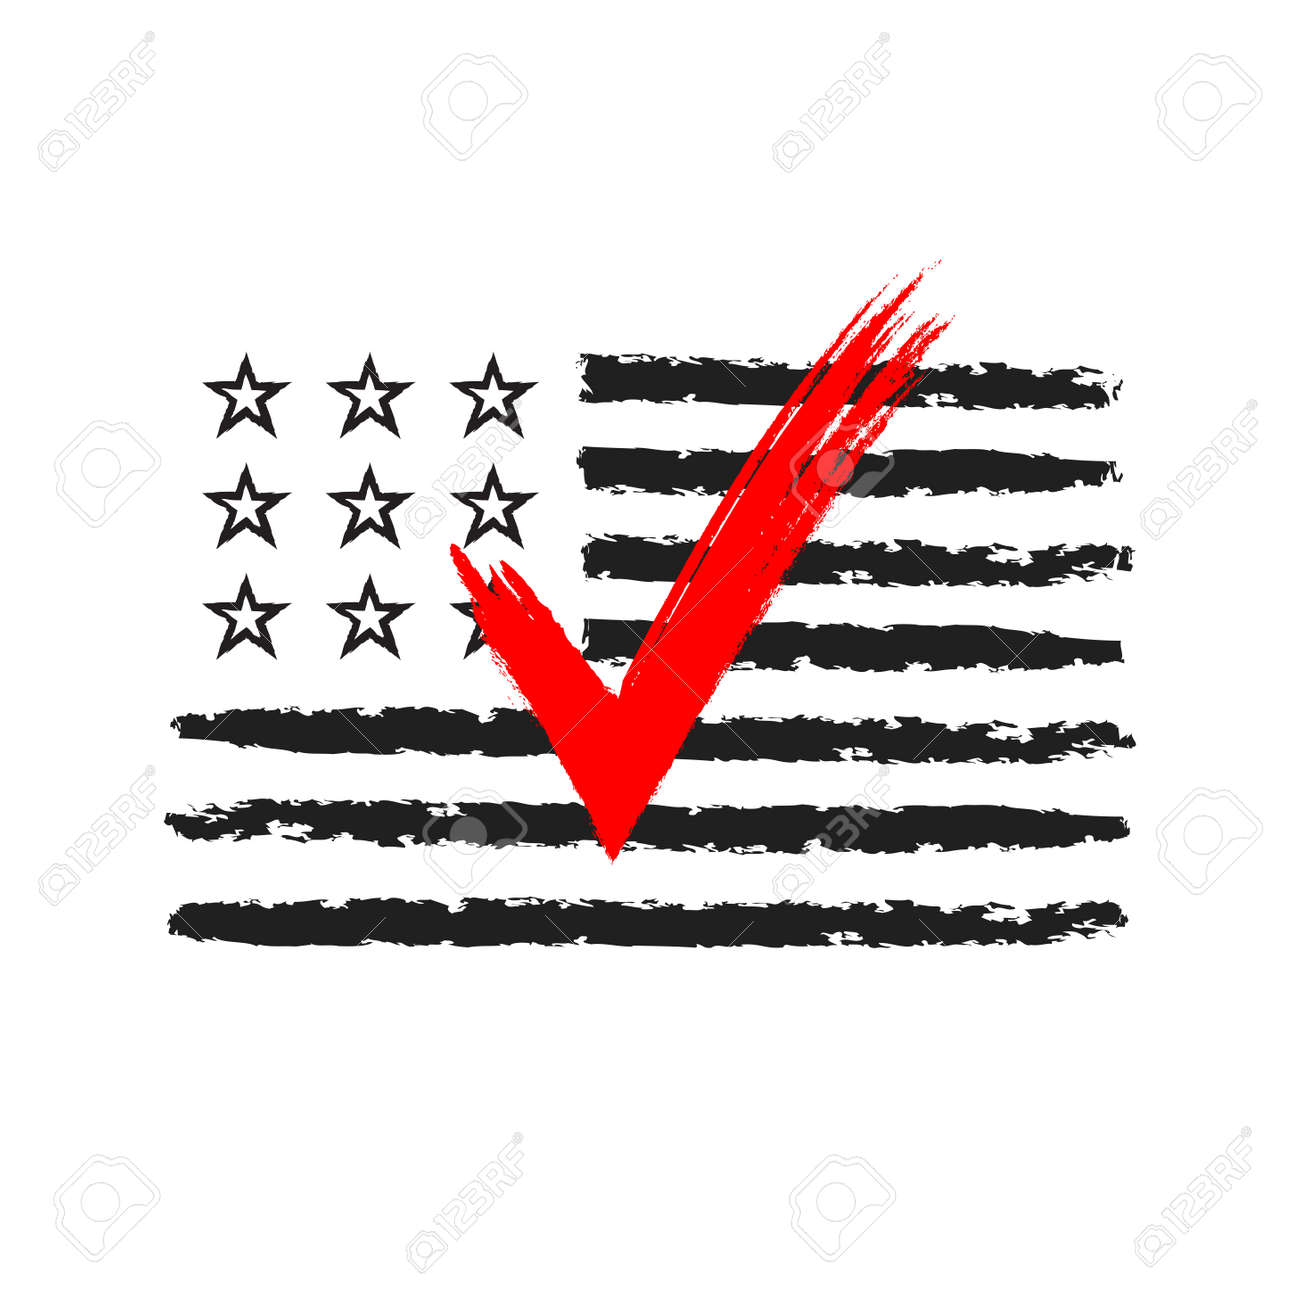 Presidential Election Usa Sign Black And Red Design On White